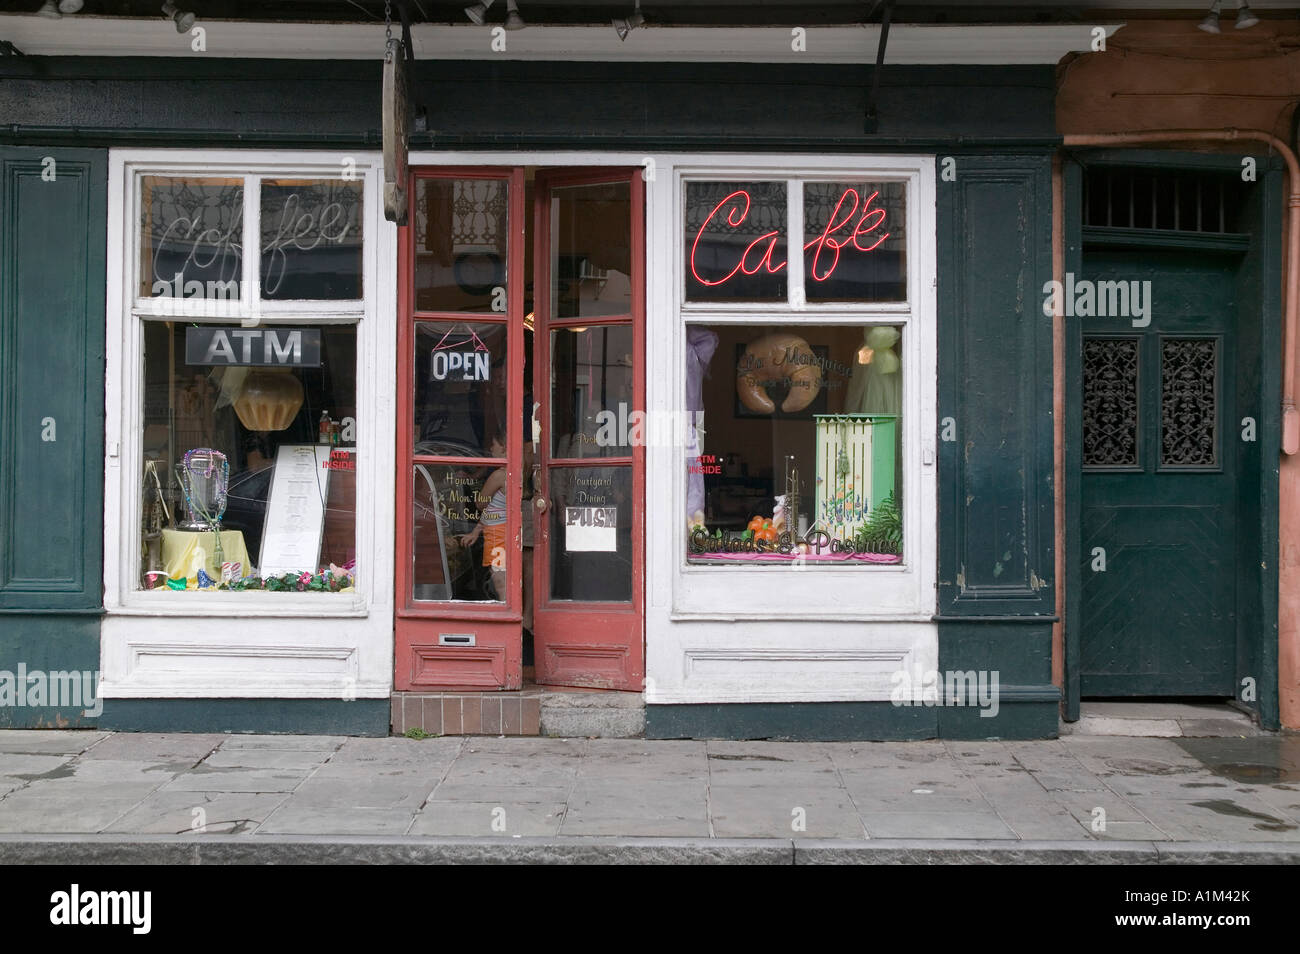 A bakery in the French Quarter in New Orleans Stock Photo 10287450